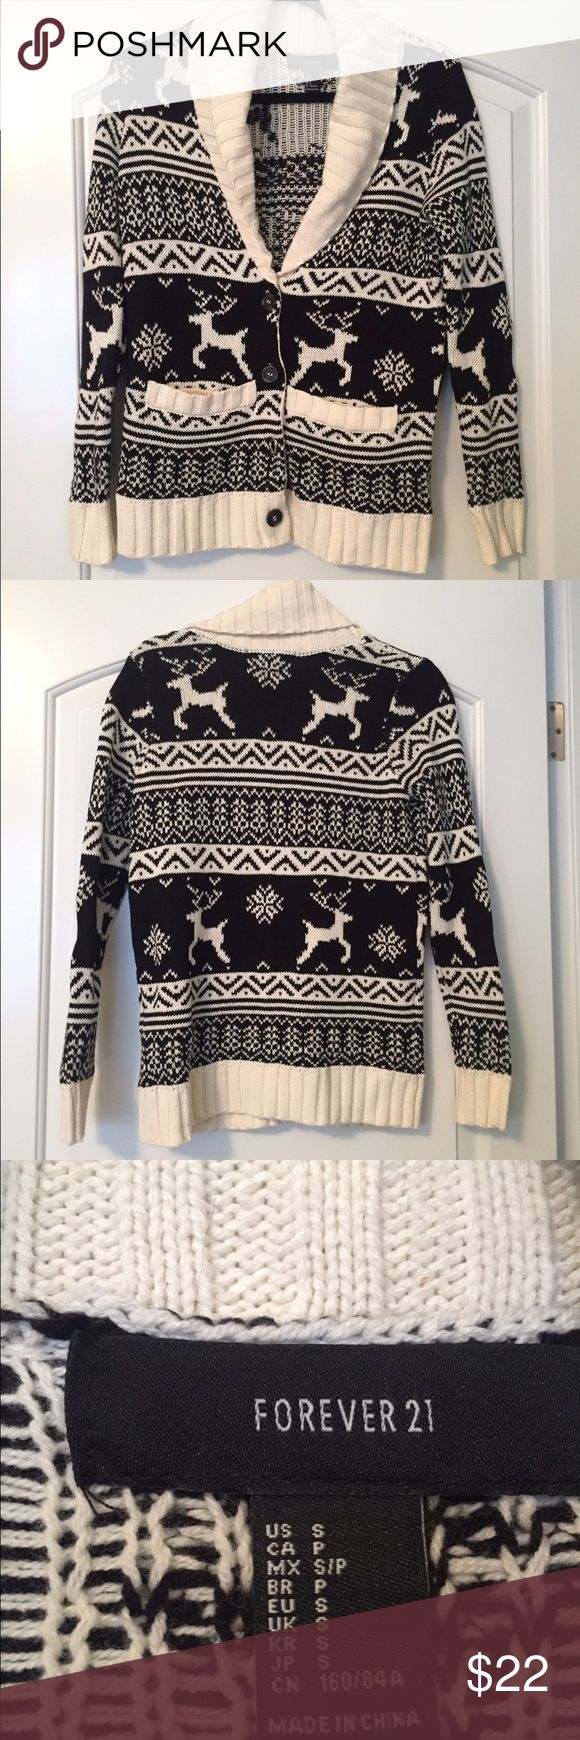 Forever 21 Christmas Cardigan Size S This is a Forever 21 knit button up cardigan with a black and white reindeer Christmas pattern. It is a size Small. Never been worn. Smoke free home. Forever 21 Sweaters Cardigans